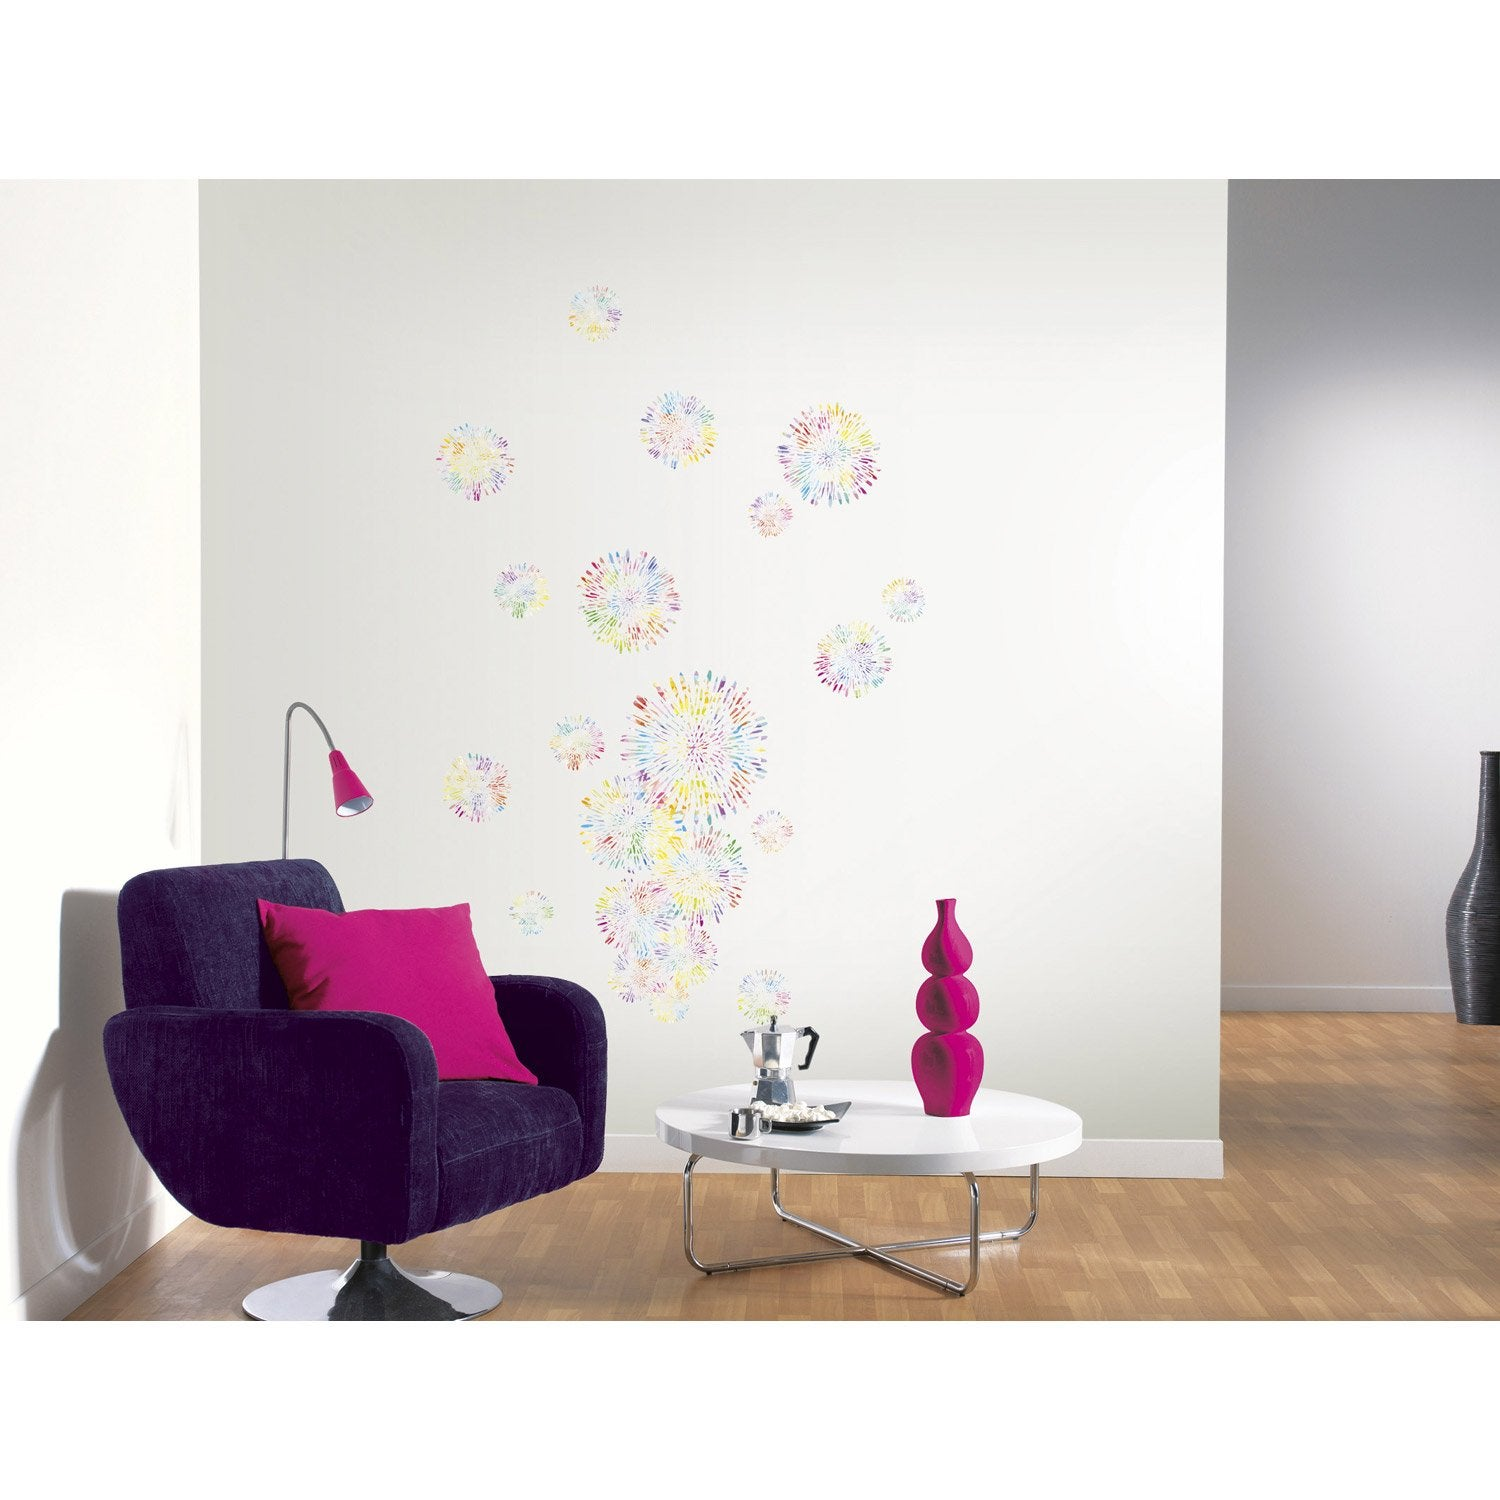 42 bulles Set Douche Dalle écran porte Stickers Autocollants Graphique Décoration